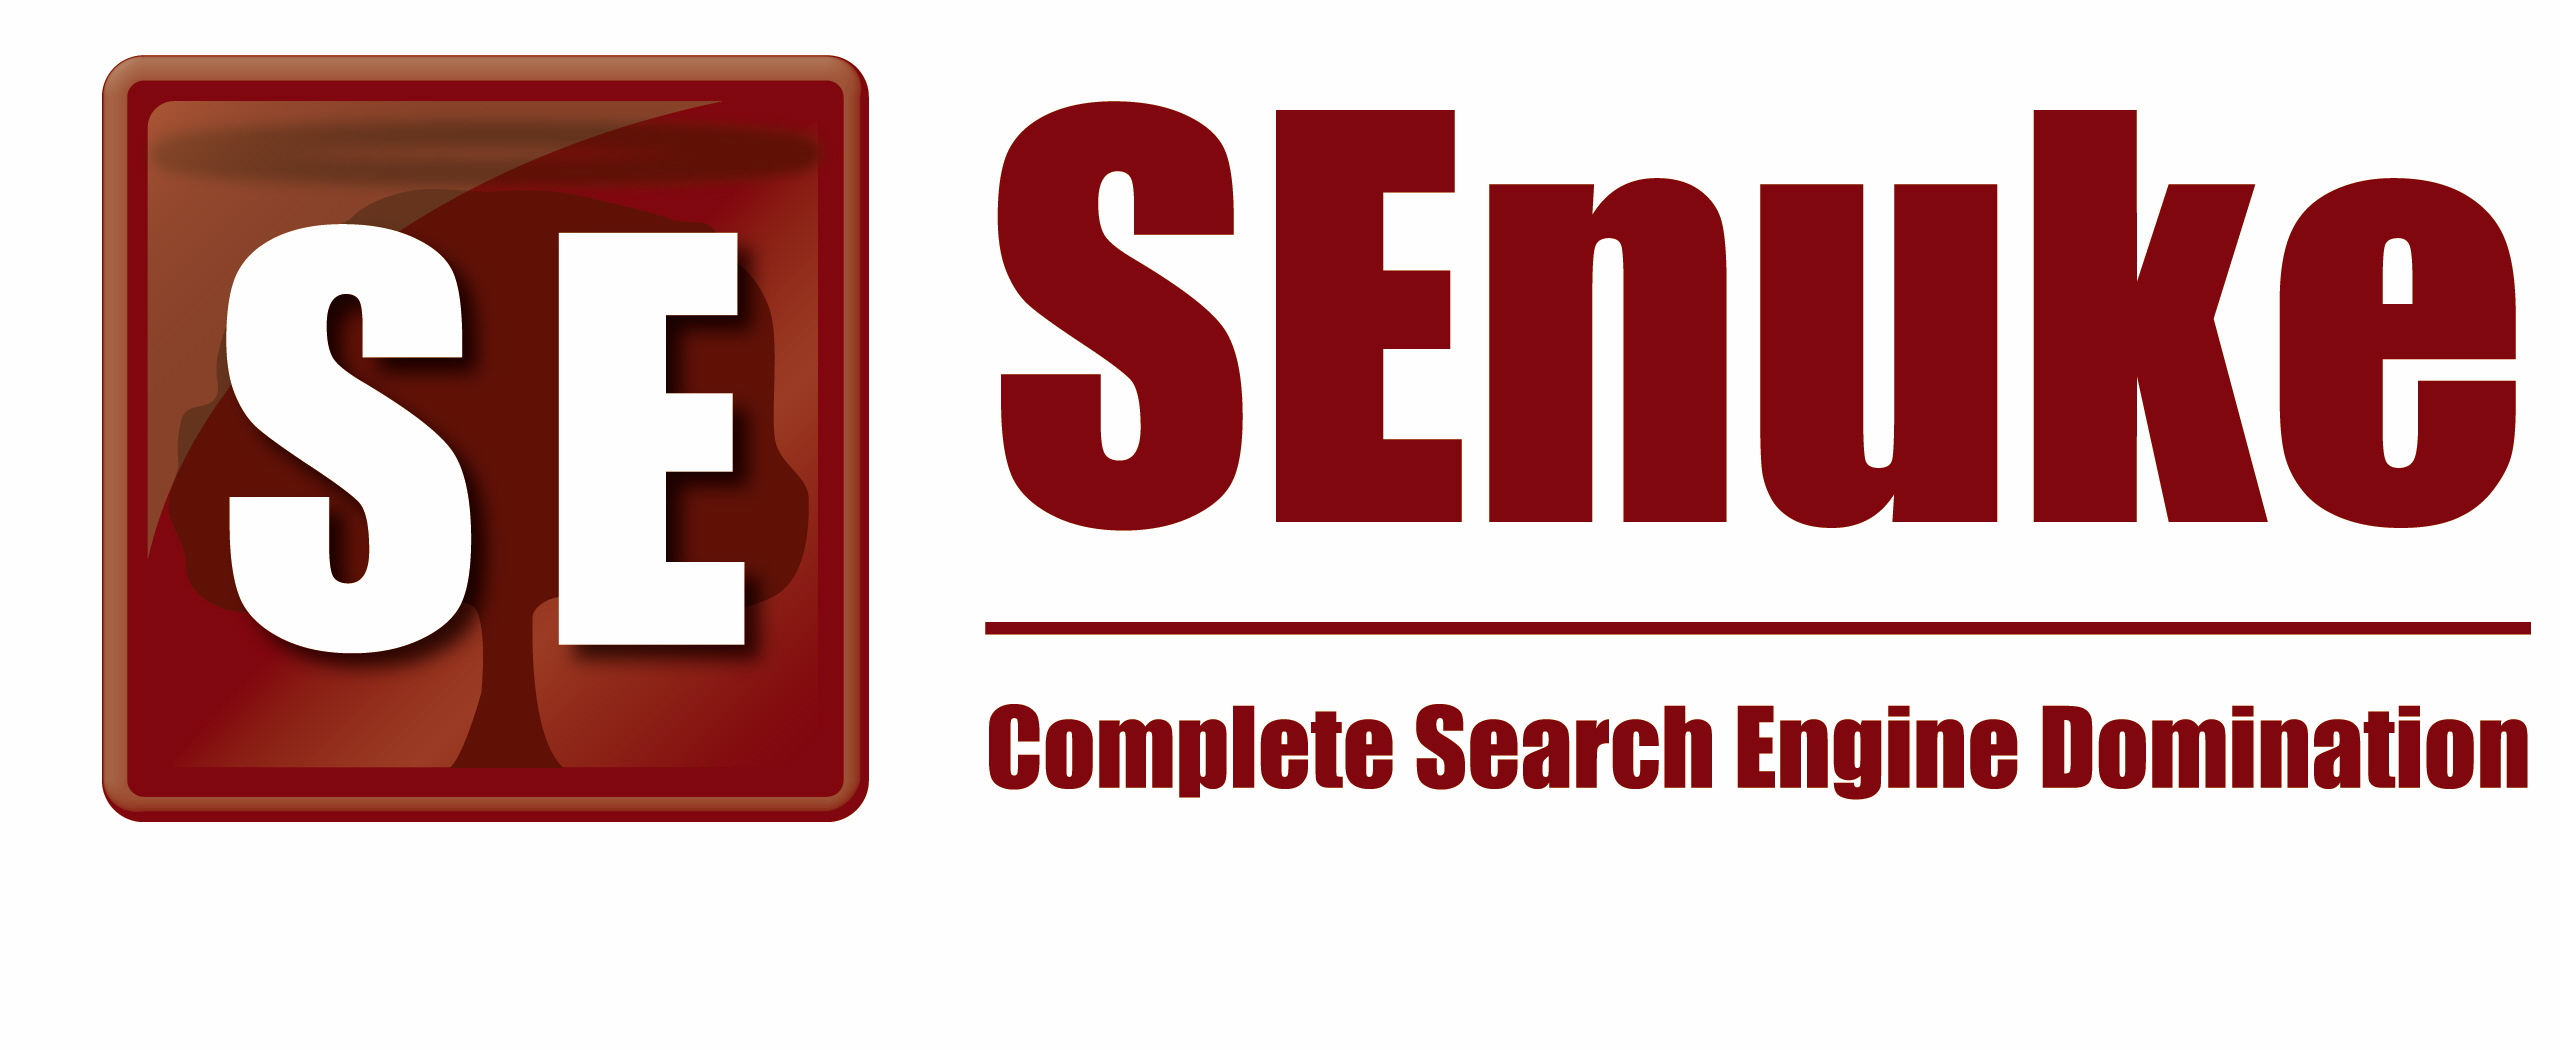 Create powerful The Full Monty SEnukeXCR that brings huge backlink power